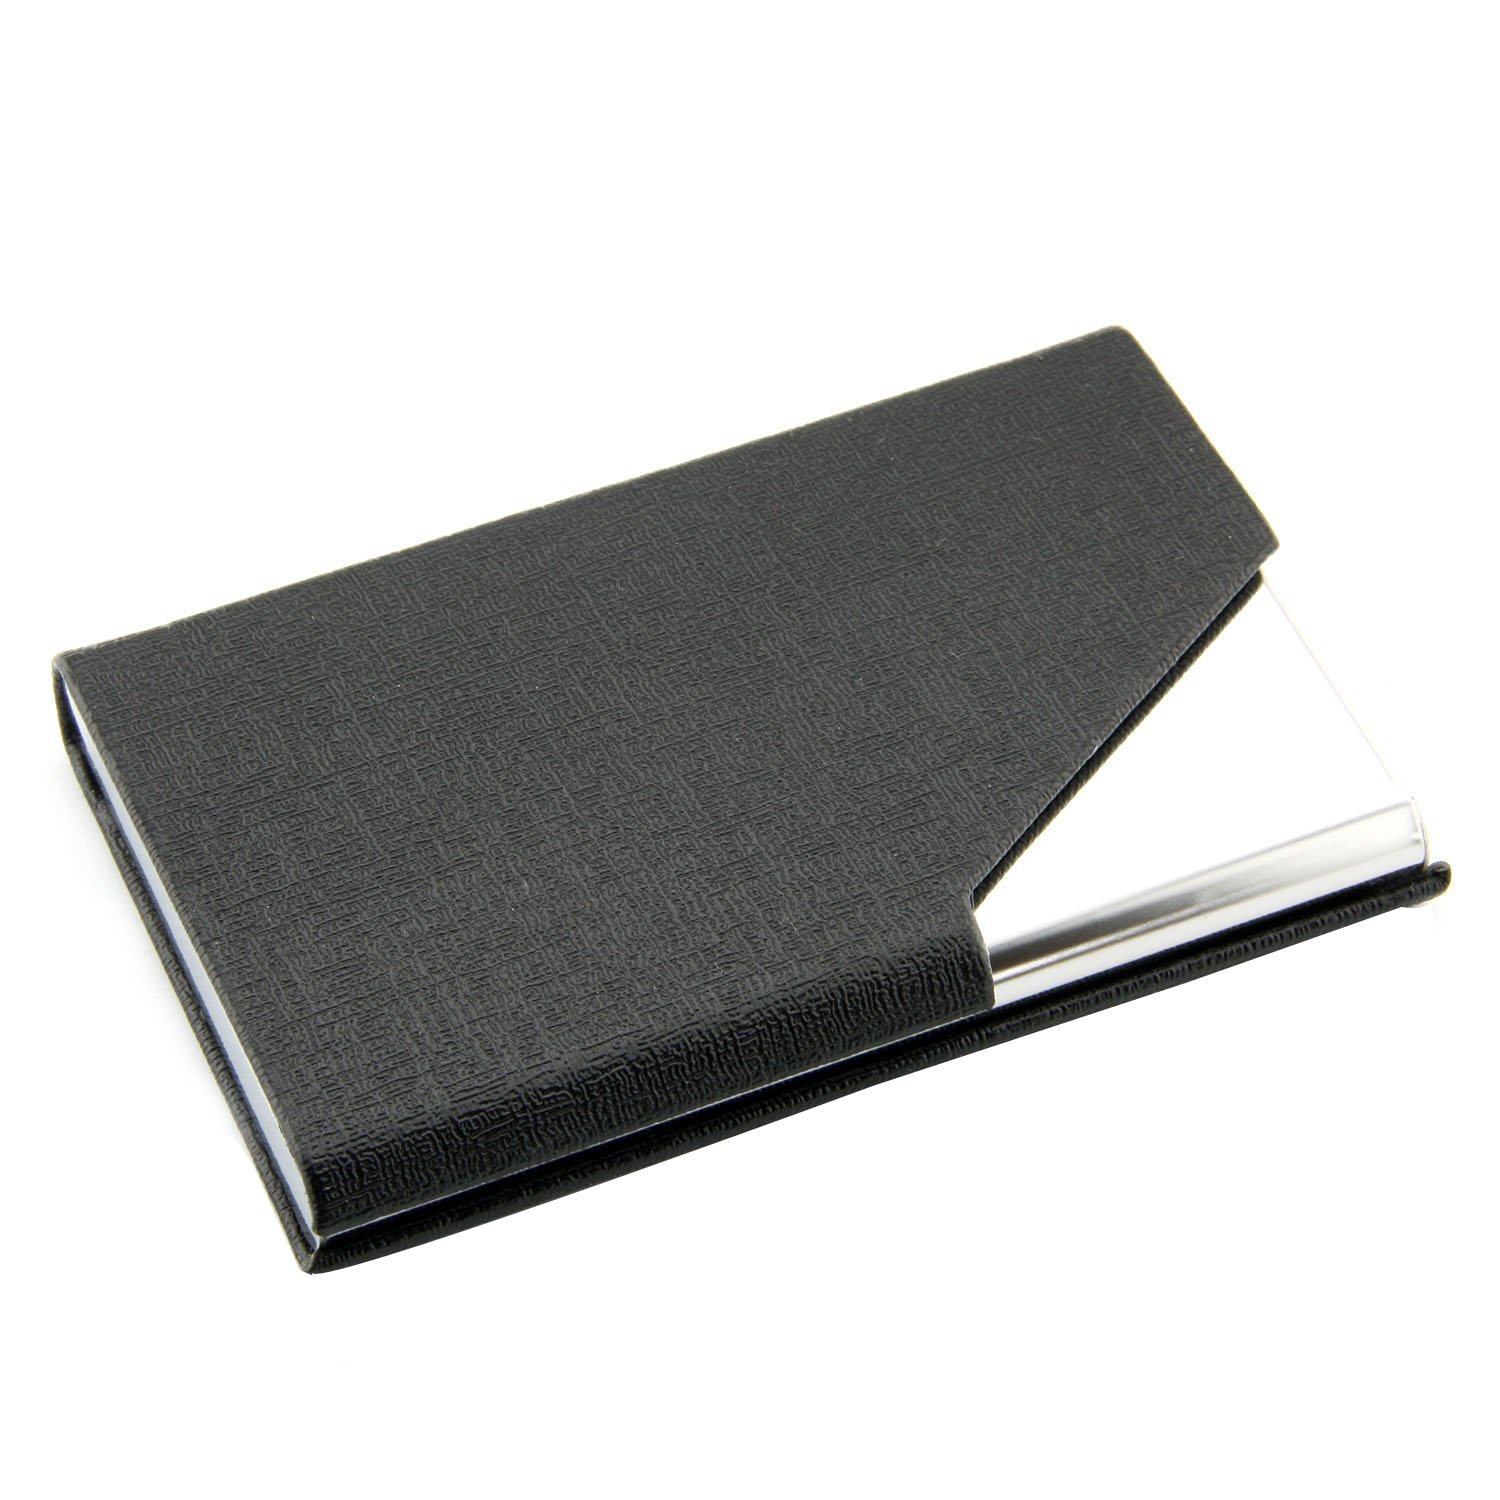 Business Name Card Holder Luxury PU Leather & Stainless Steel Multi Card Case Holder card ID Case/Holder Black